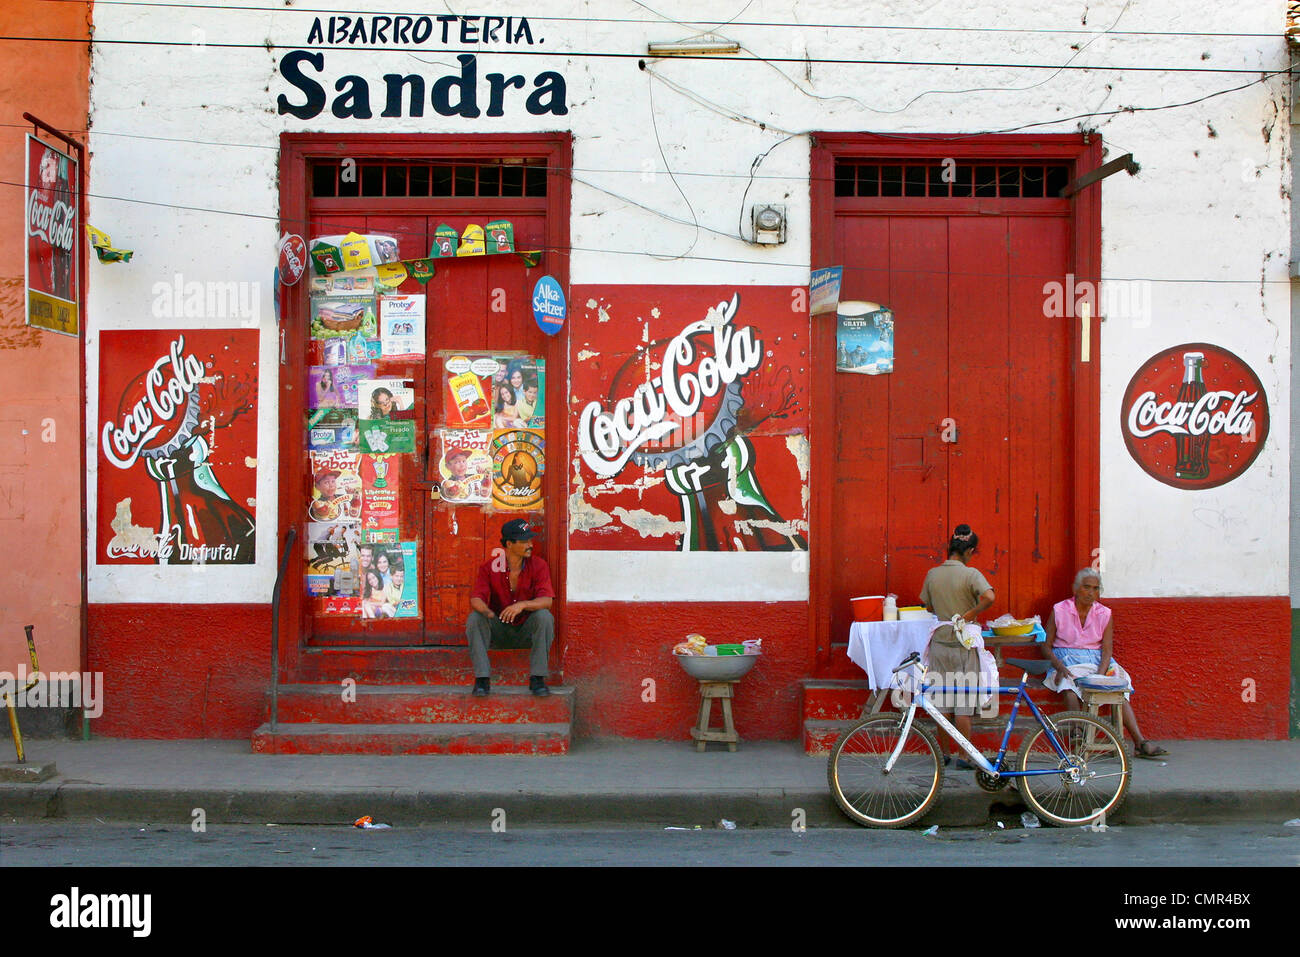 Leon, Nicaragua, street scene with coca cola signs and advertisements and posters stuck on red doors. - Stock Image